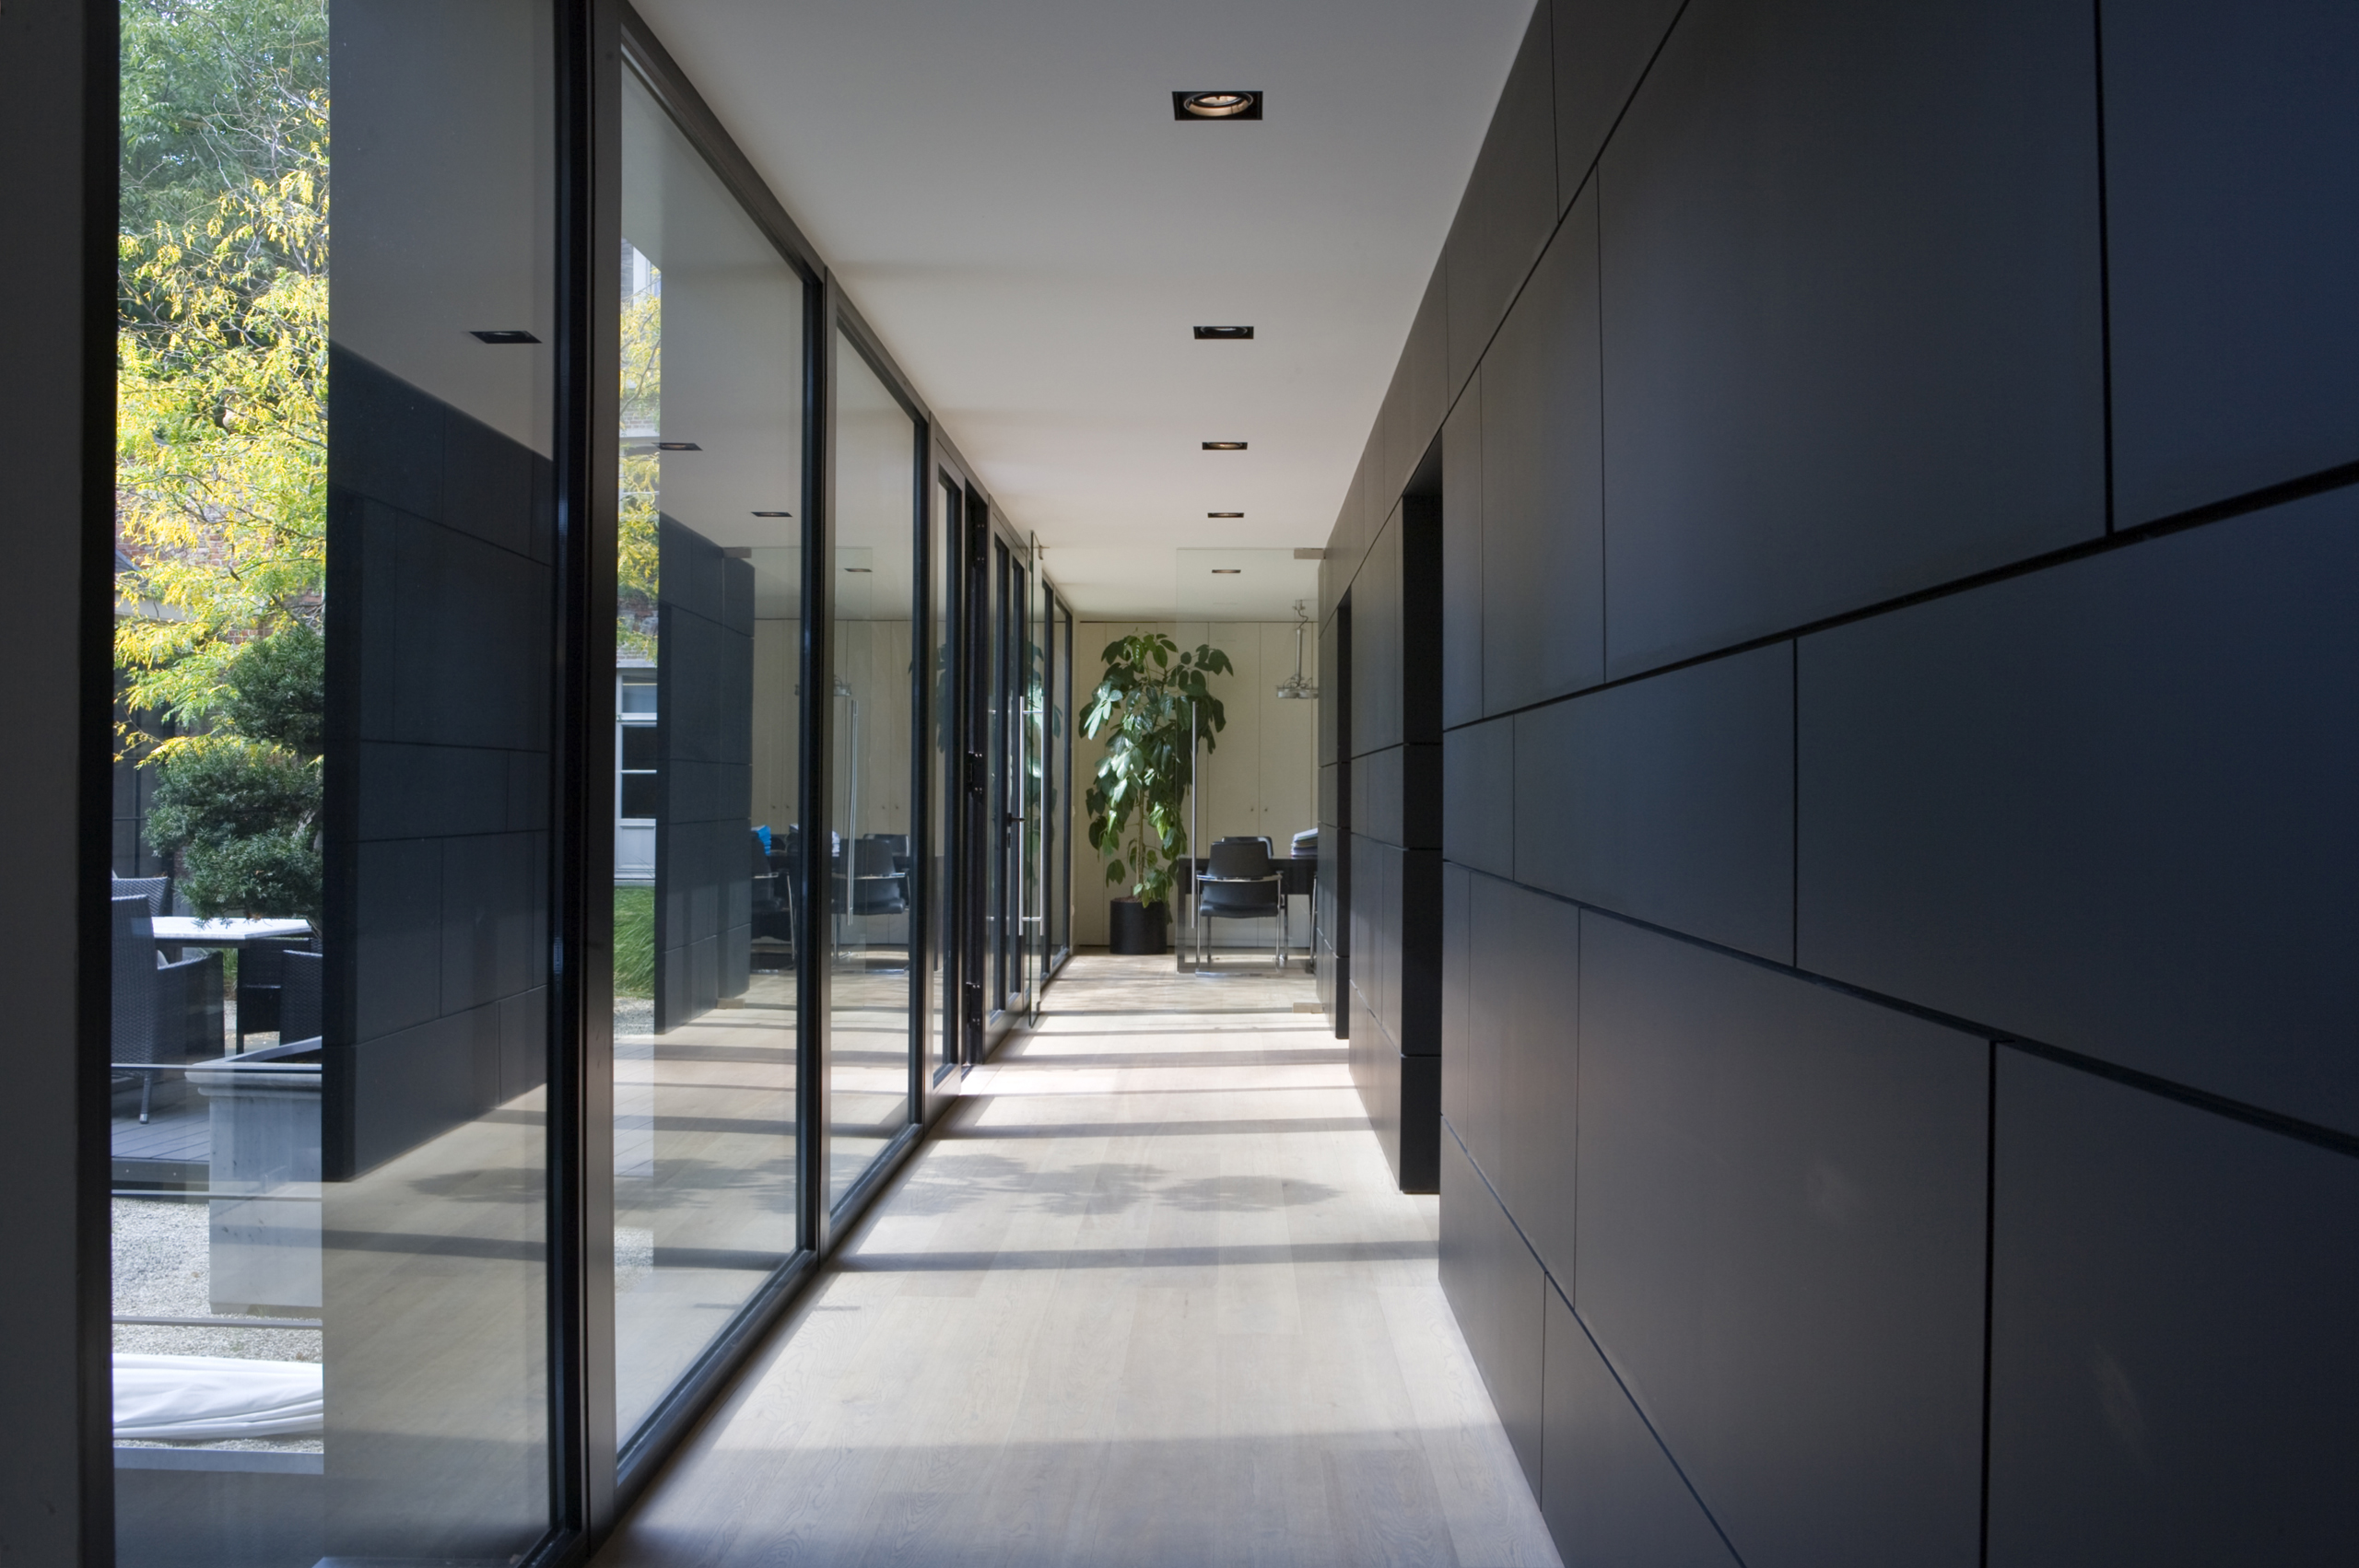 the corridor and offices